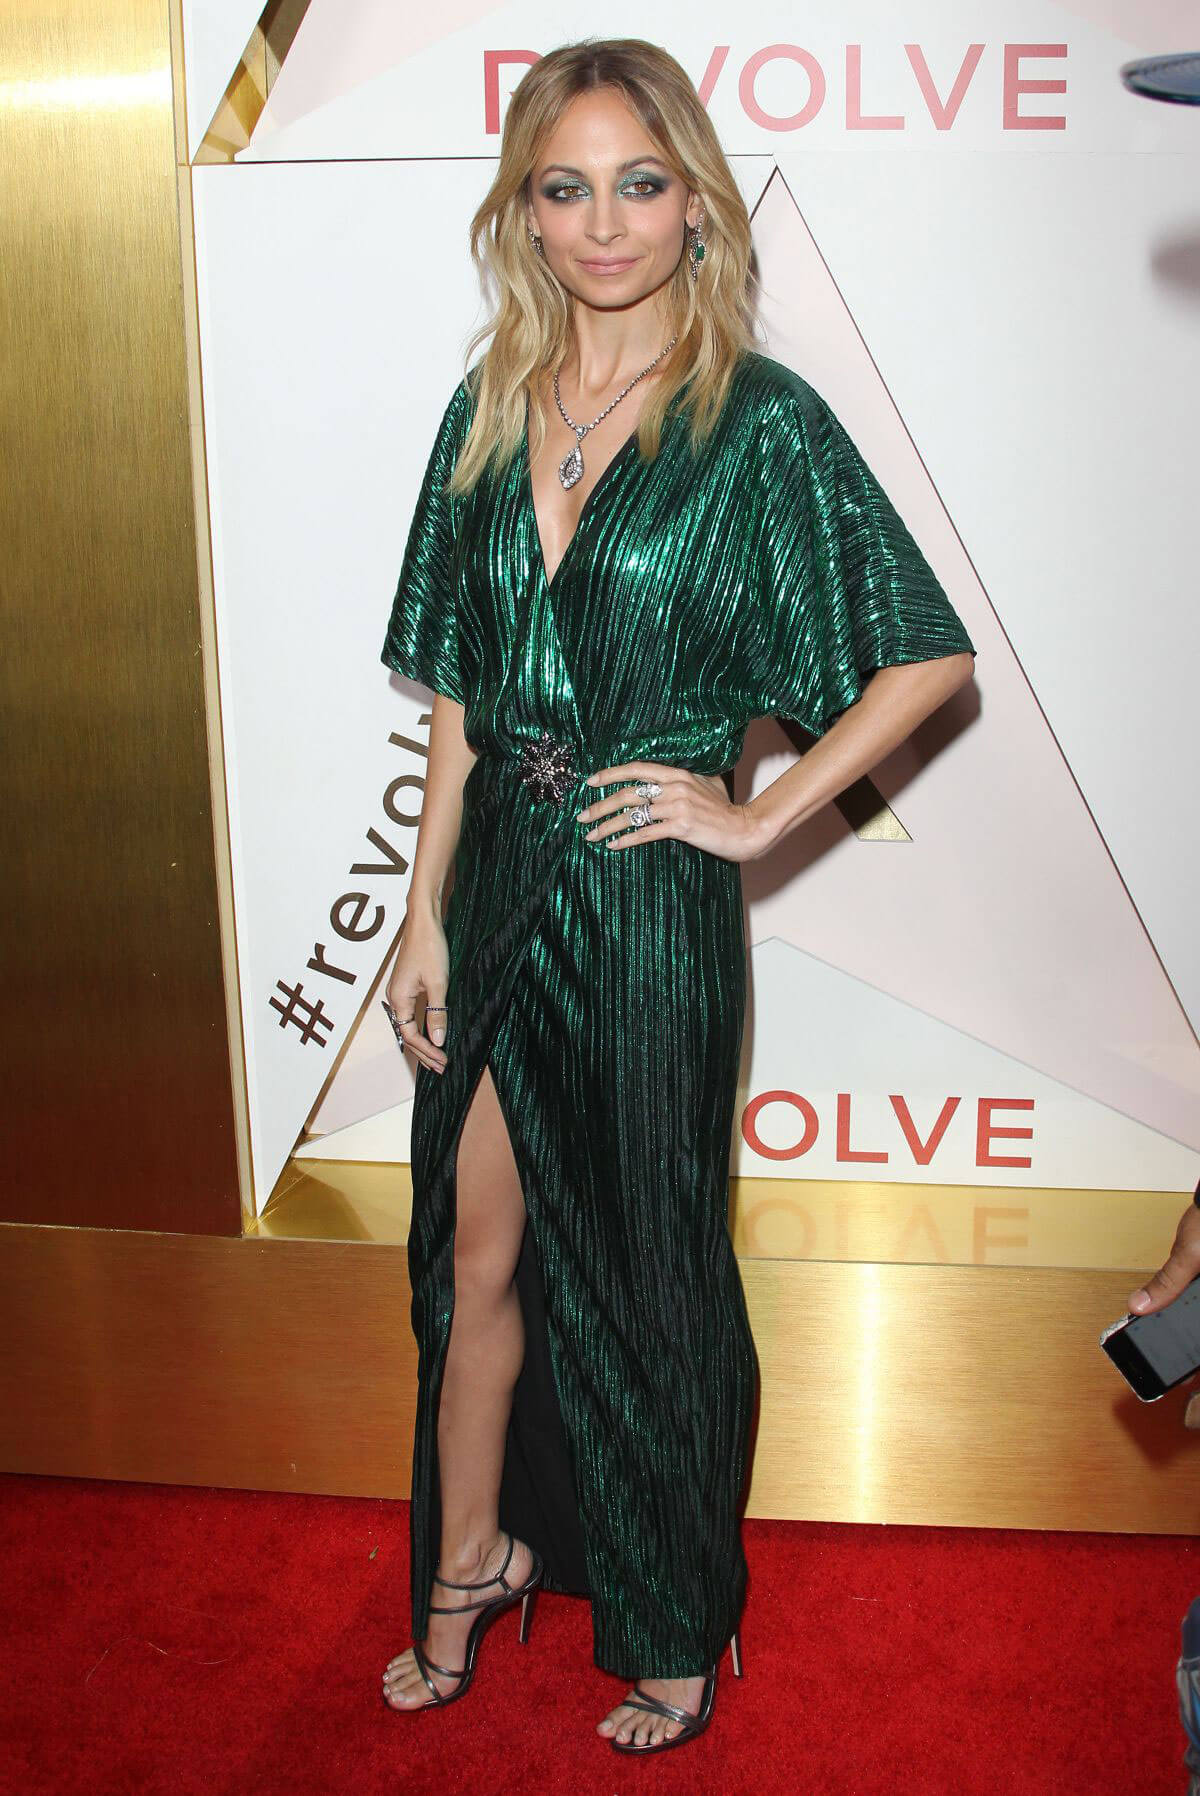 Nicole Richie wears Green Gown Dress Stills at #revolveawards in Hollywood